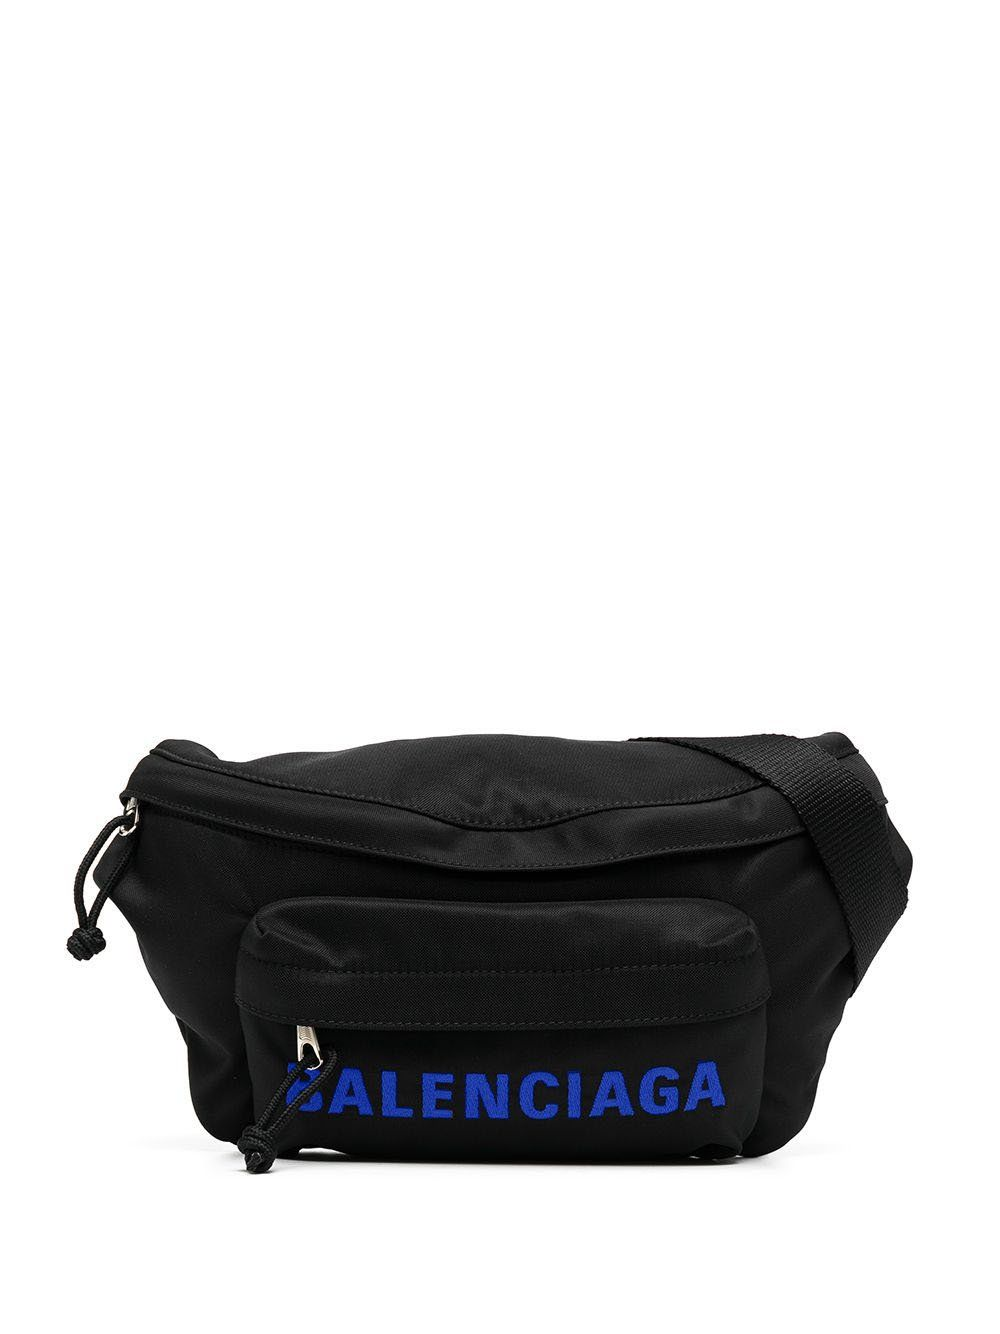 BALENCIAGA Logo Belt Bag Black Blue